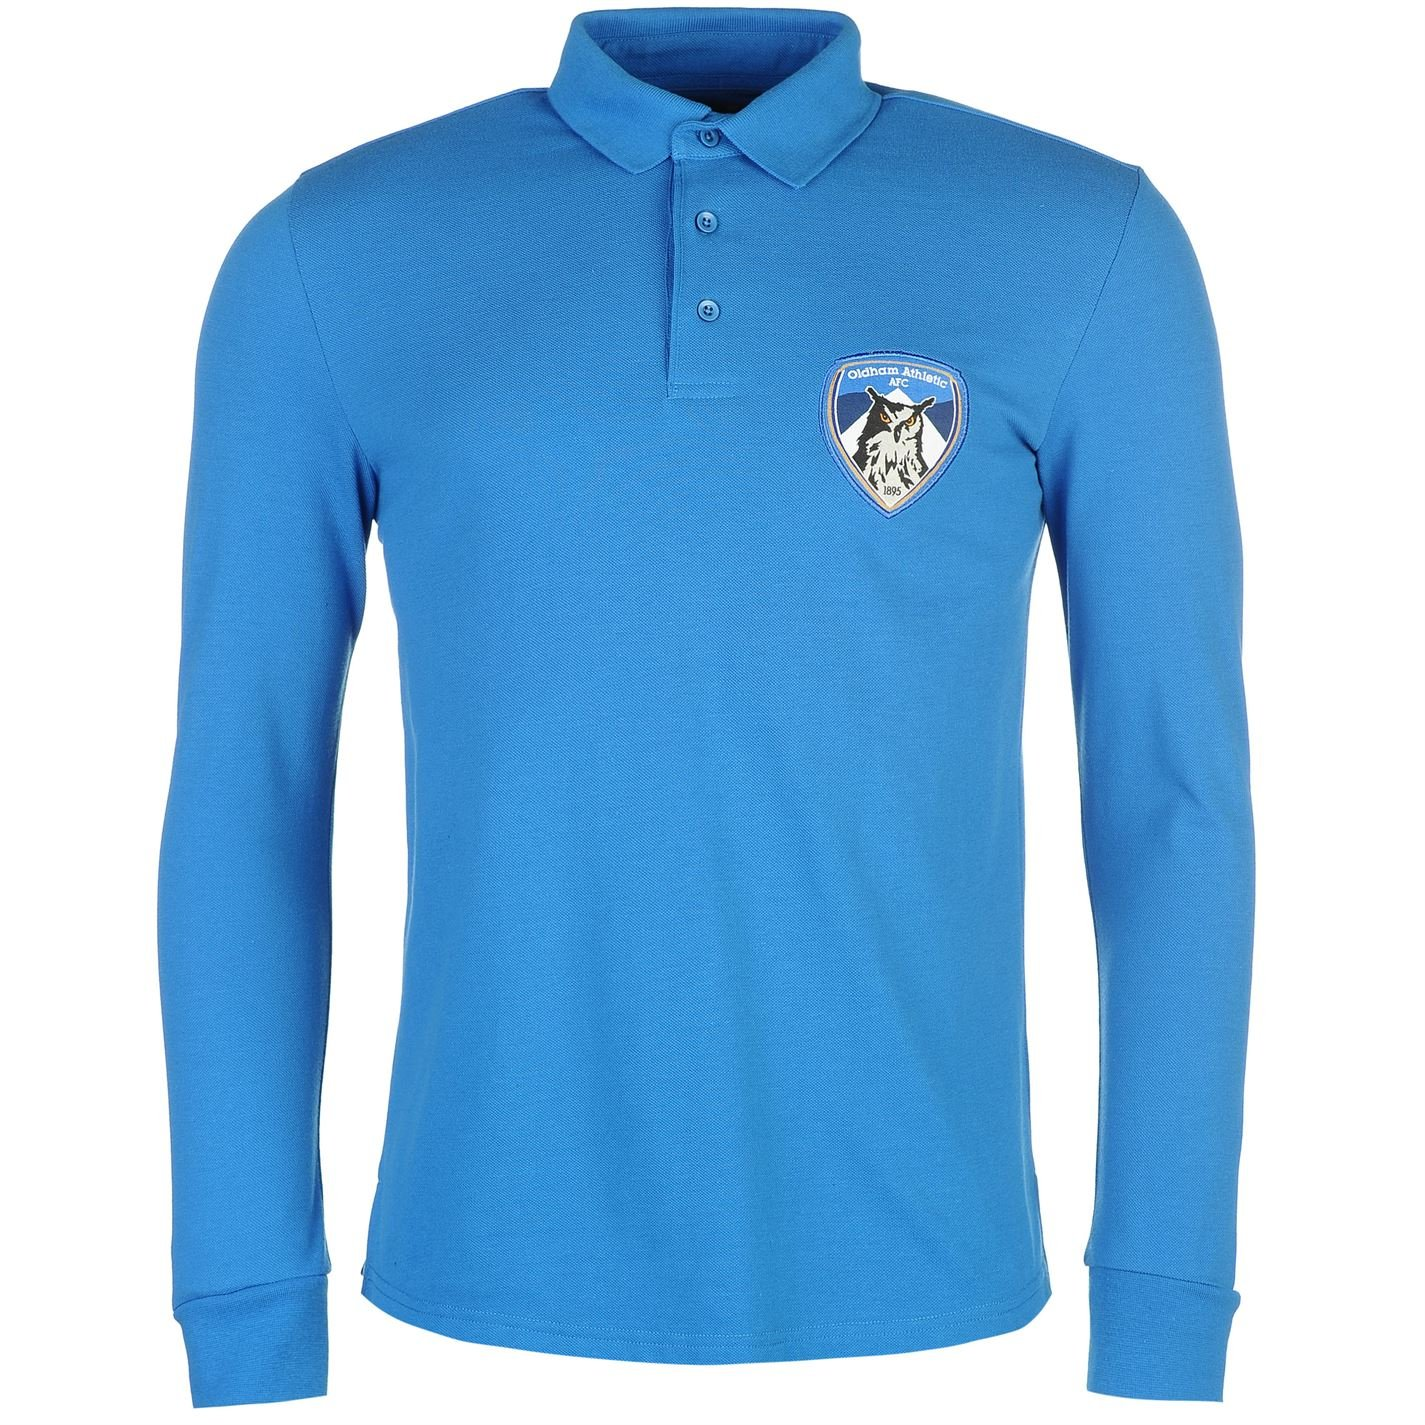 Team Hombre Athletic Futbol Club Polo Camisa Casual Mangas Largas ...